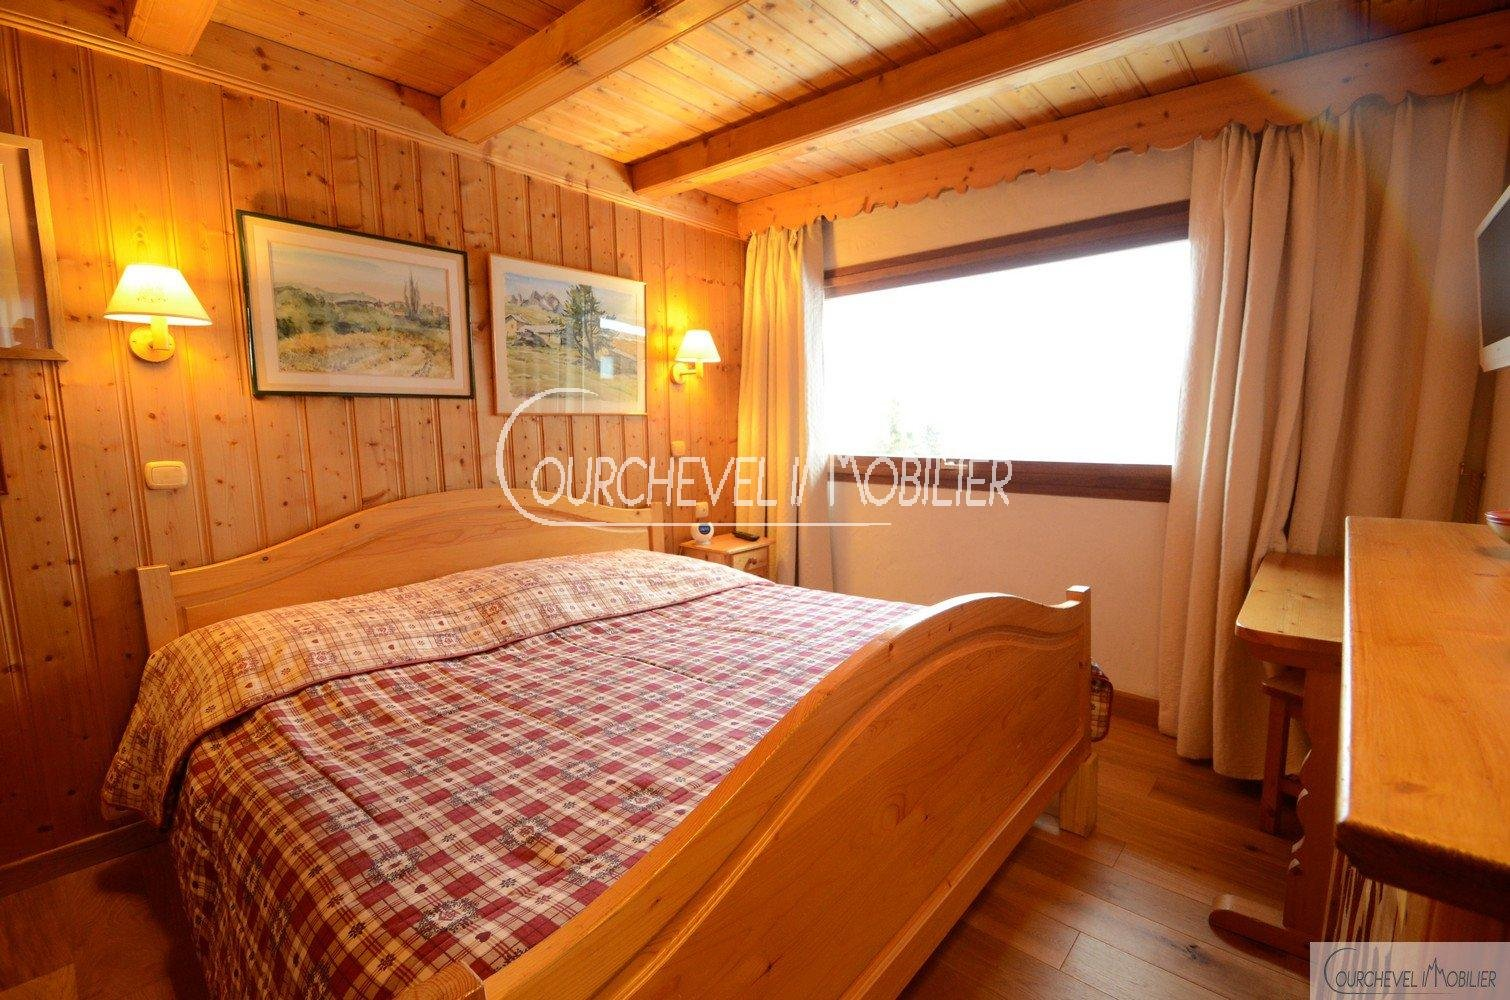 APPARTMENT - 1 bedroom - Courchevel 1850